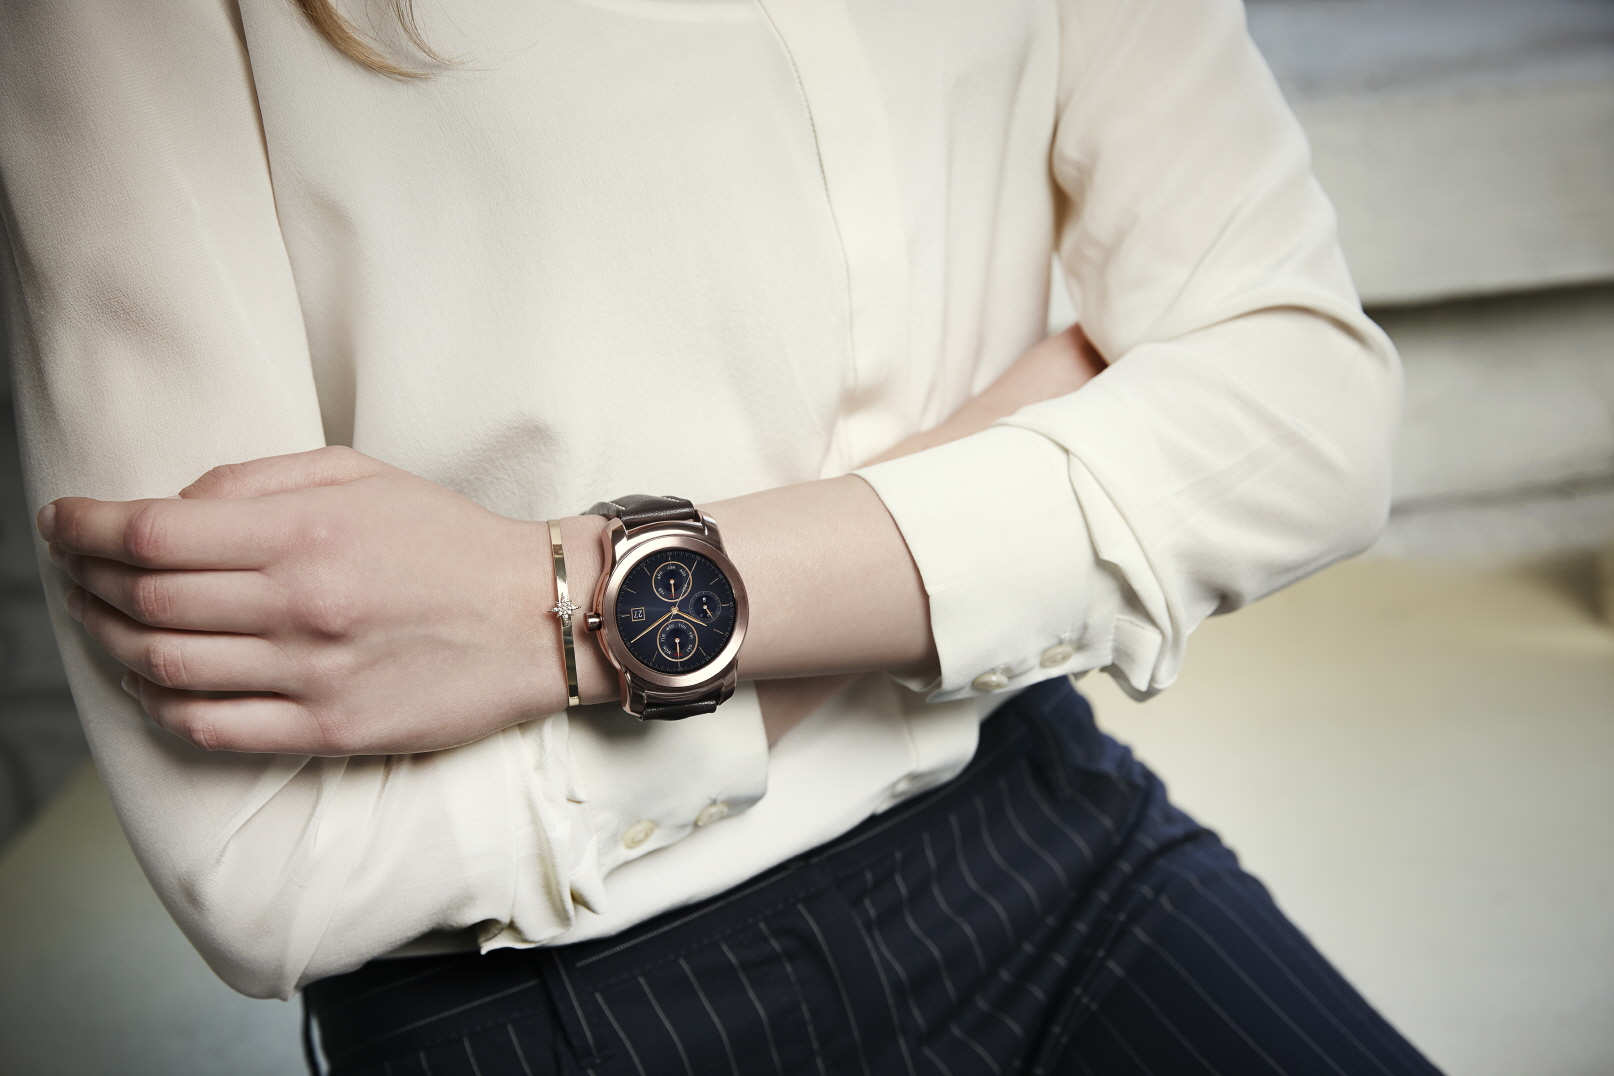 A woman folding her arms while wearing the LG Watch Urbane in gold.